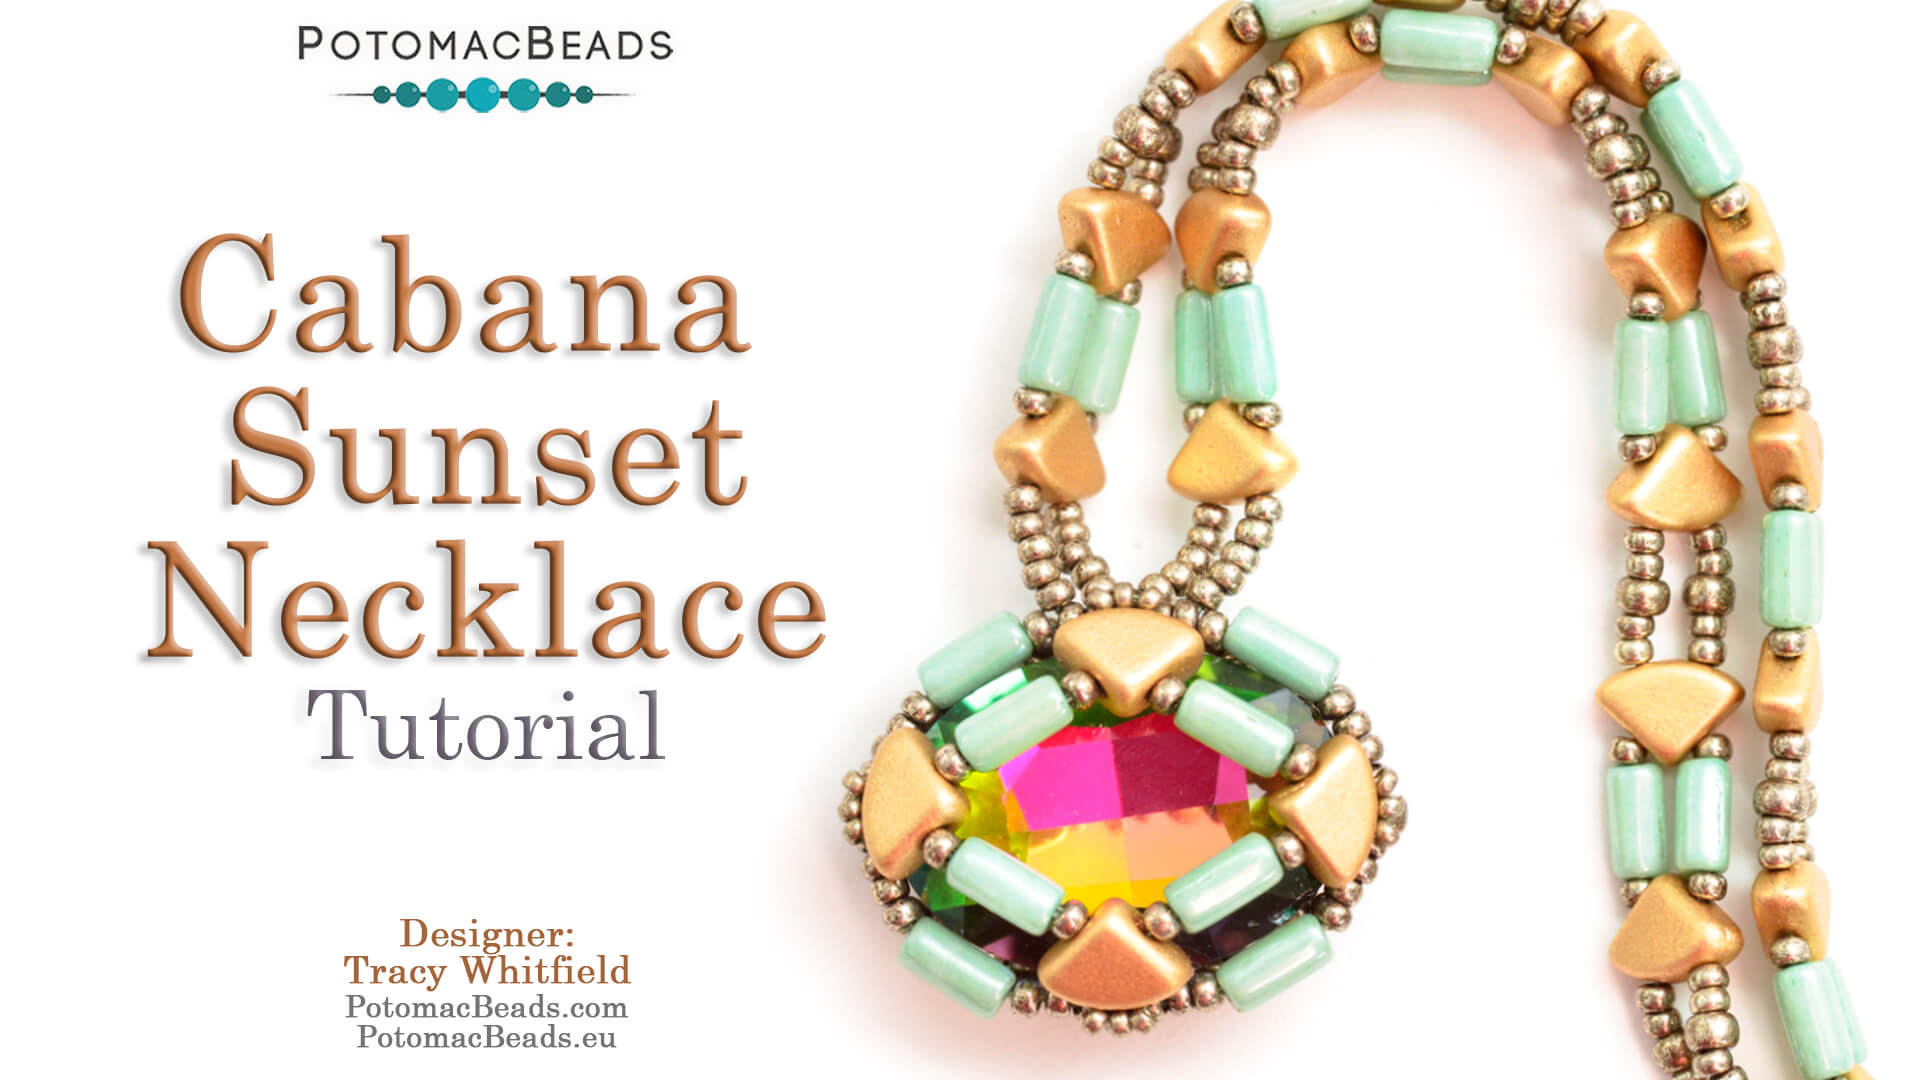 How to Bead / Videos Sorted by Beads / Tubelet Bead Videos / Cabana Sunset Necklace Tutorial